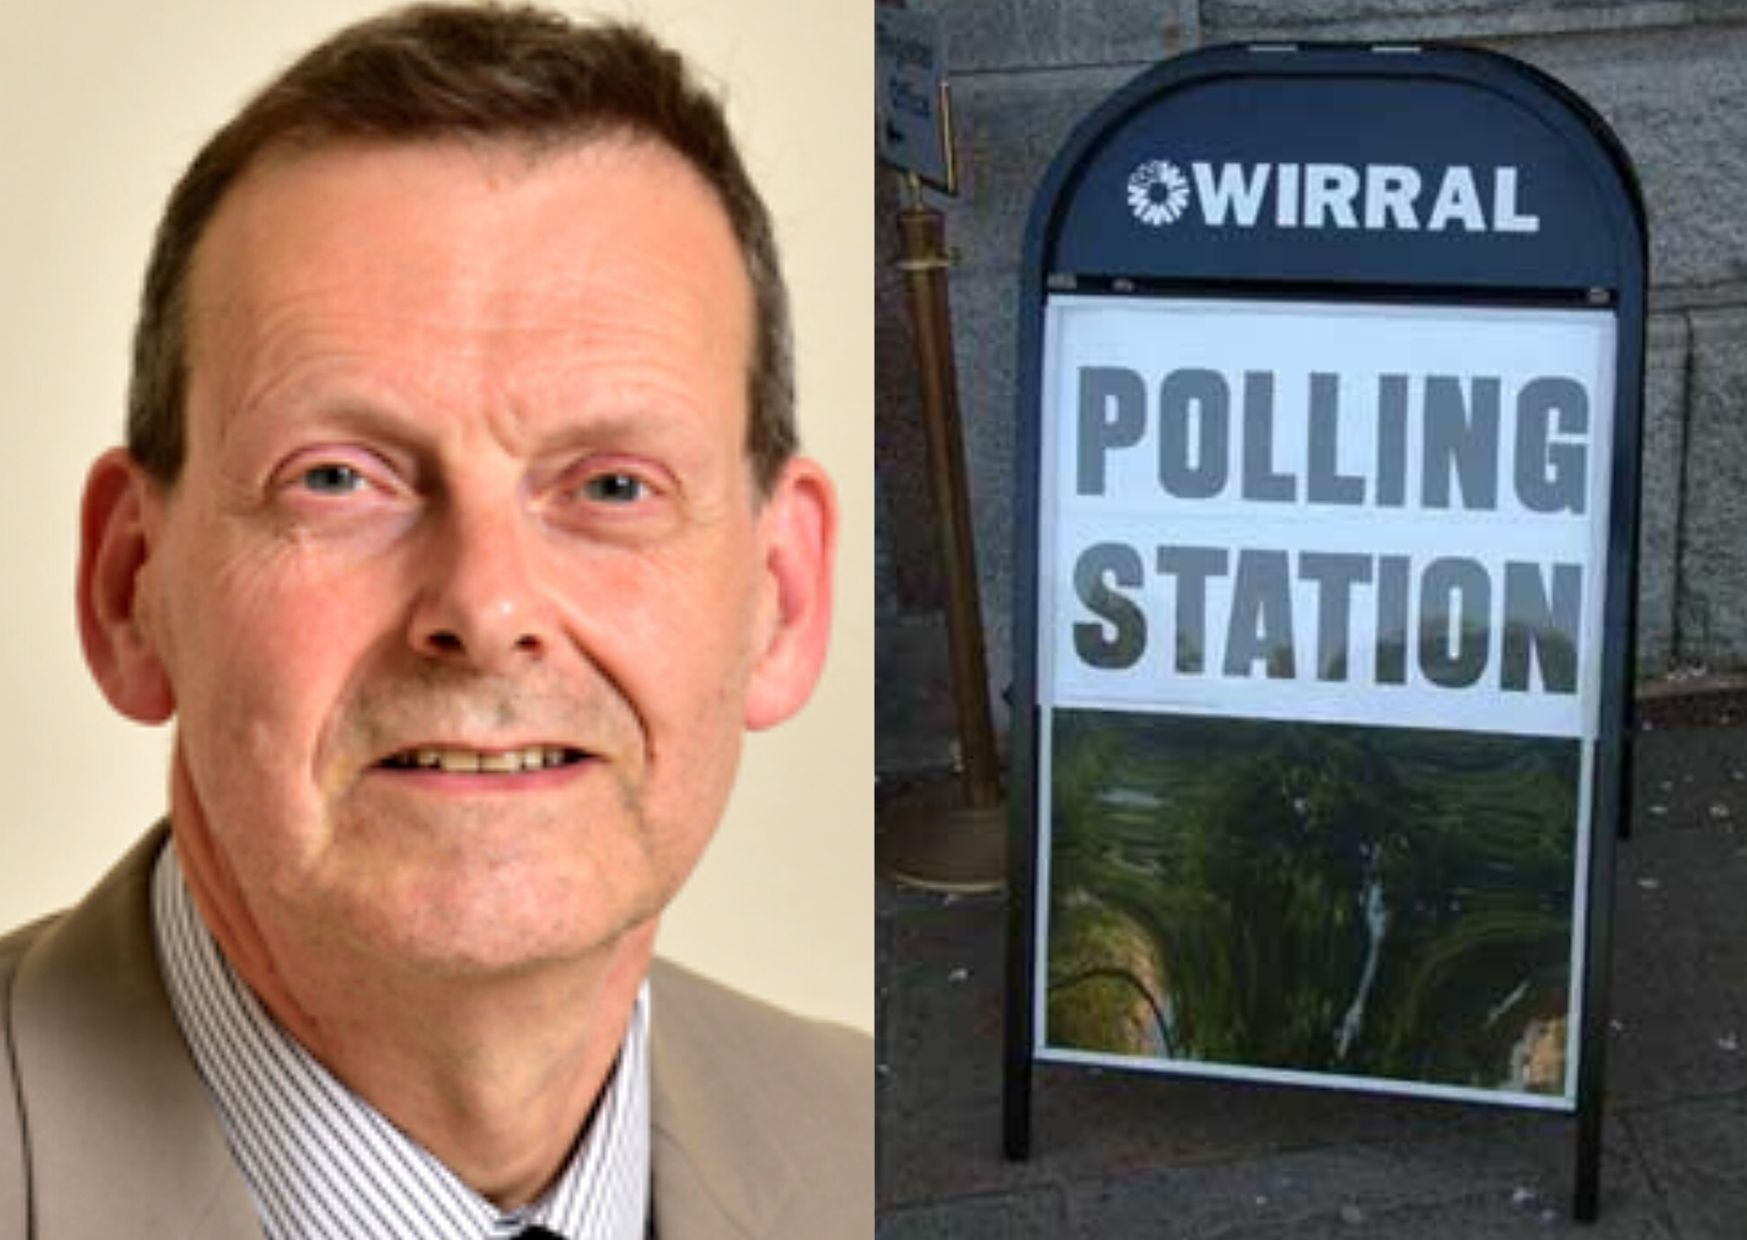 Green Party councillor speaks out about election disruption to schools